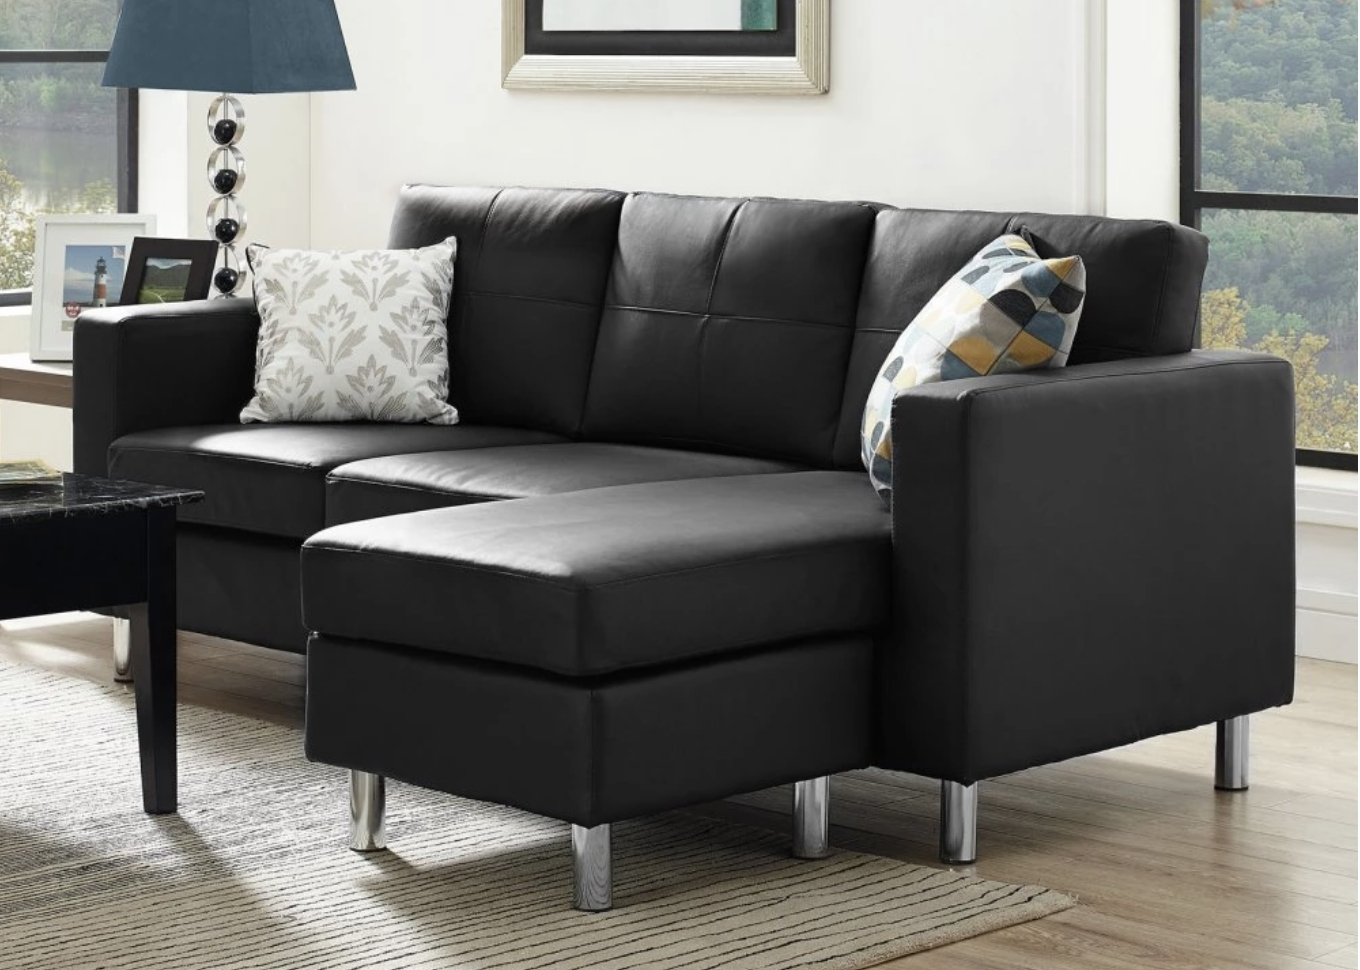 Famous 75 Modern Sectional Sofas For Small Spaces (2018) For Sectional Sofas In Small Spaces (View 7 of 20)